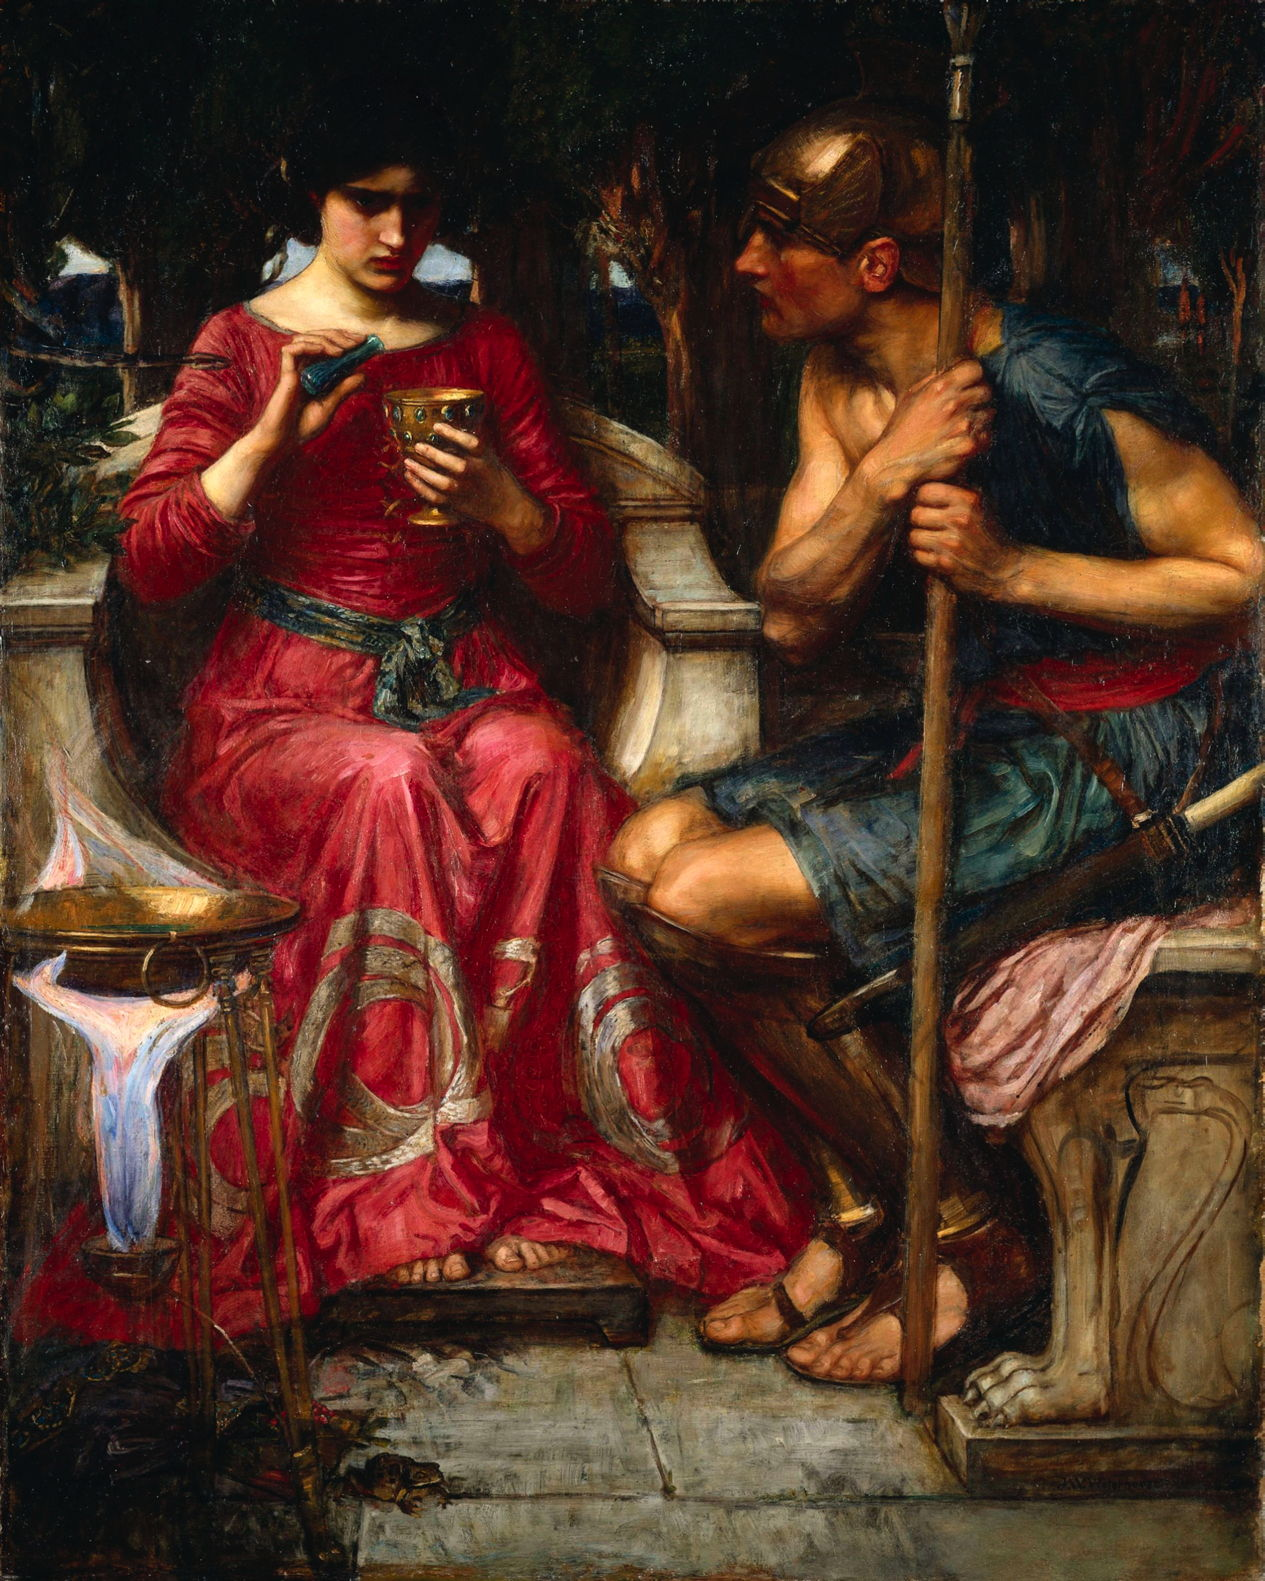 Antyki I Sztuka Greek Mythology Circe Offers Cup To Odysseus